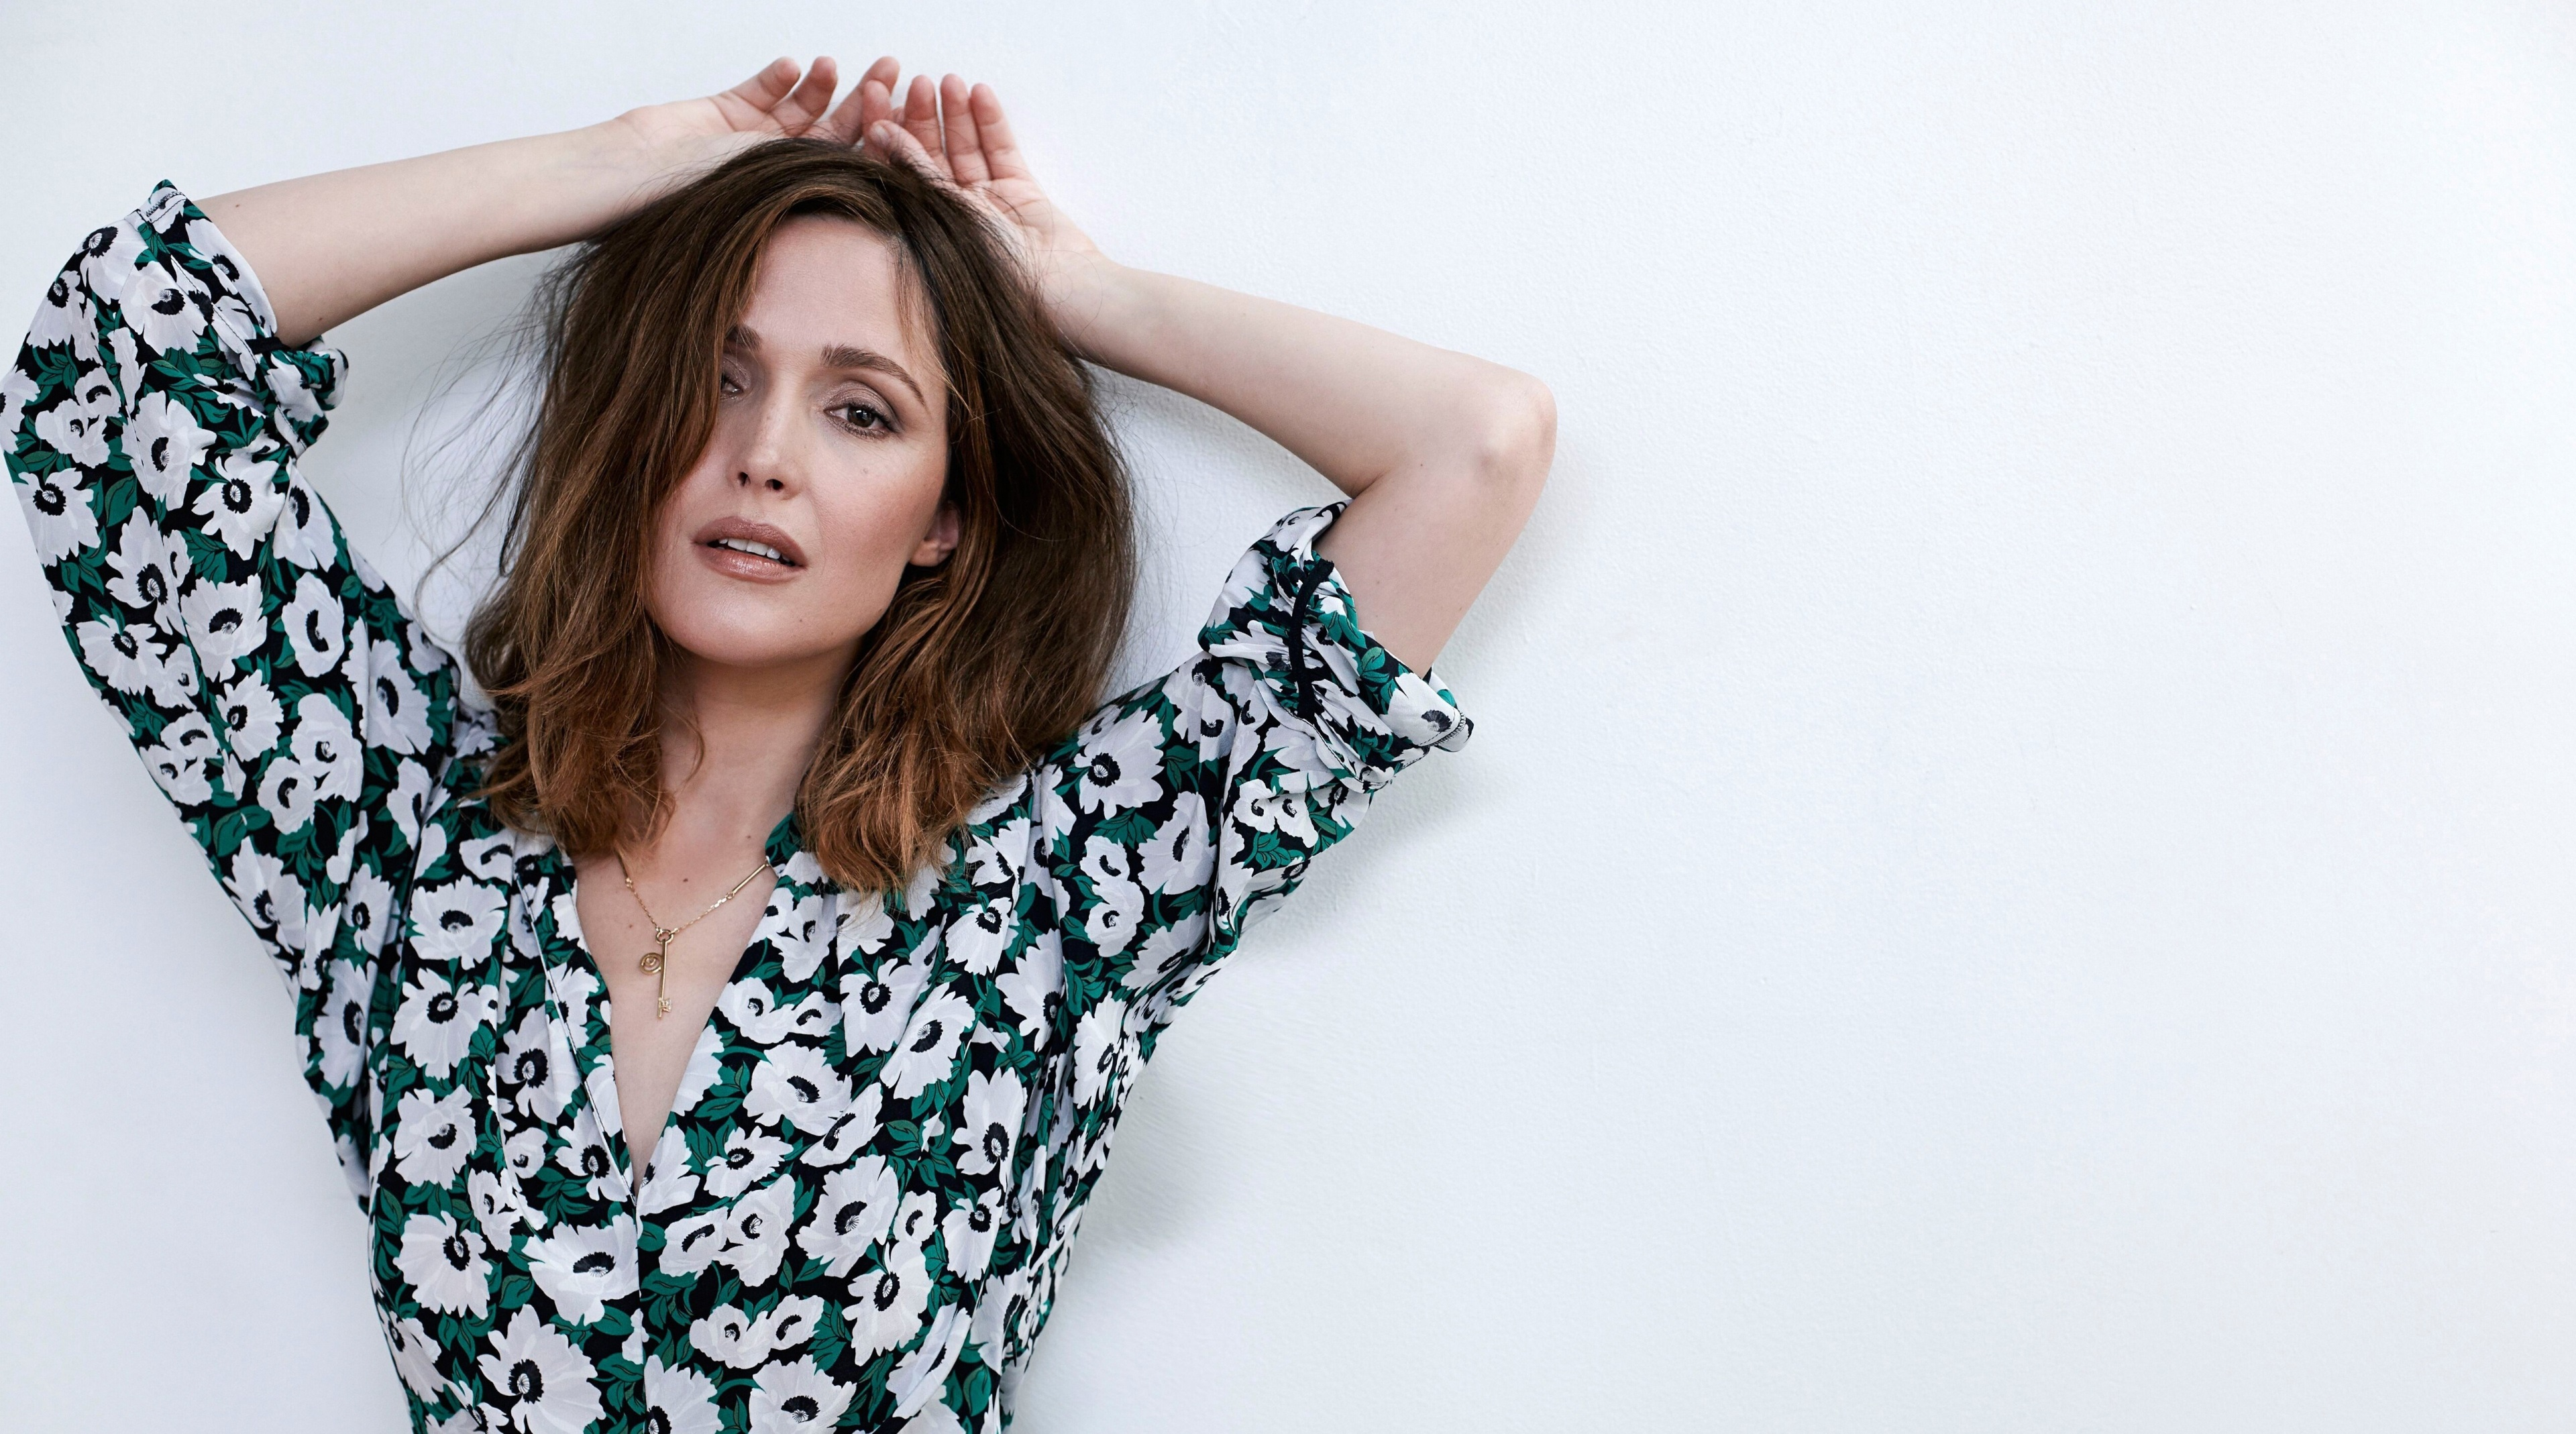 3840x2138 - Rose Byrne Wallpapers 29